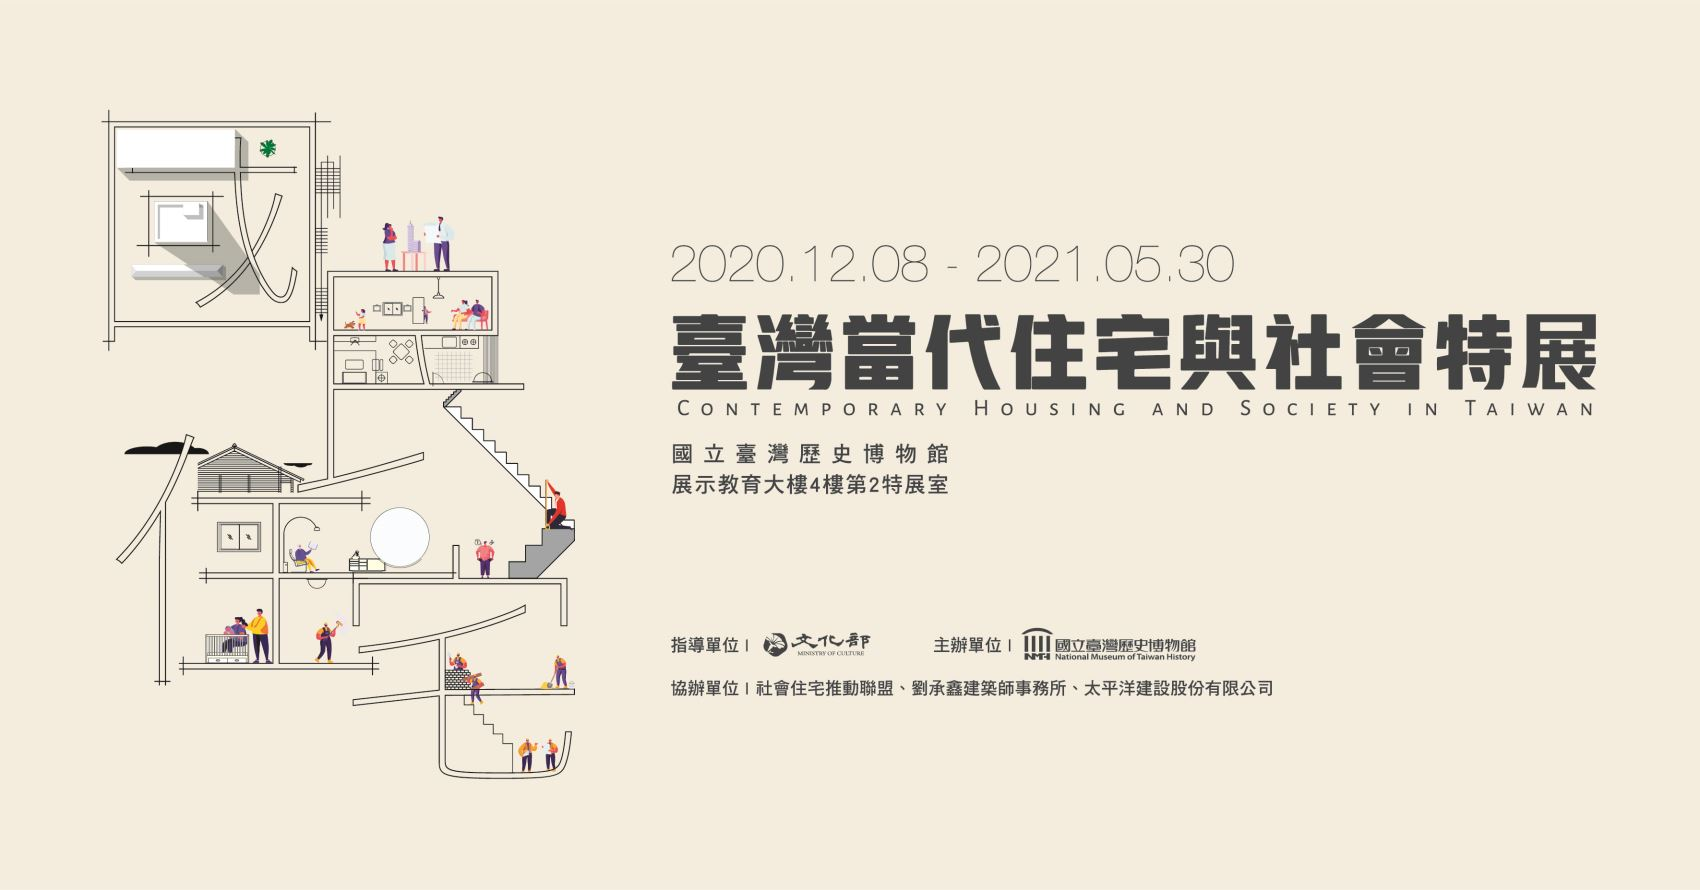 Contemporary Housing and Society in Taiwan